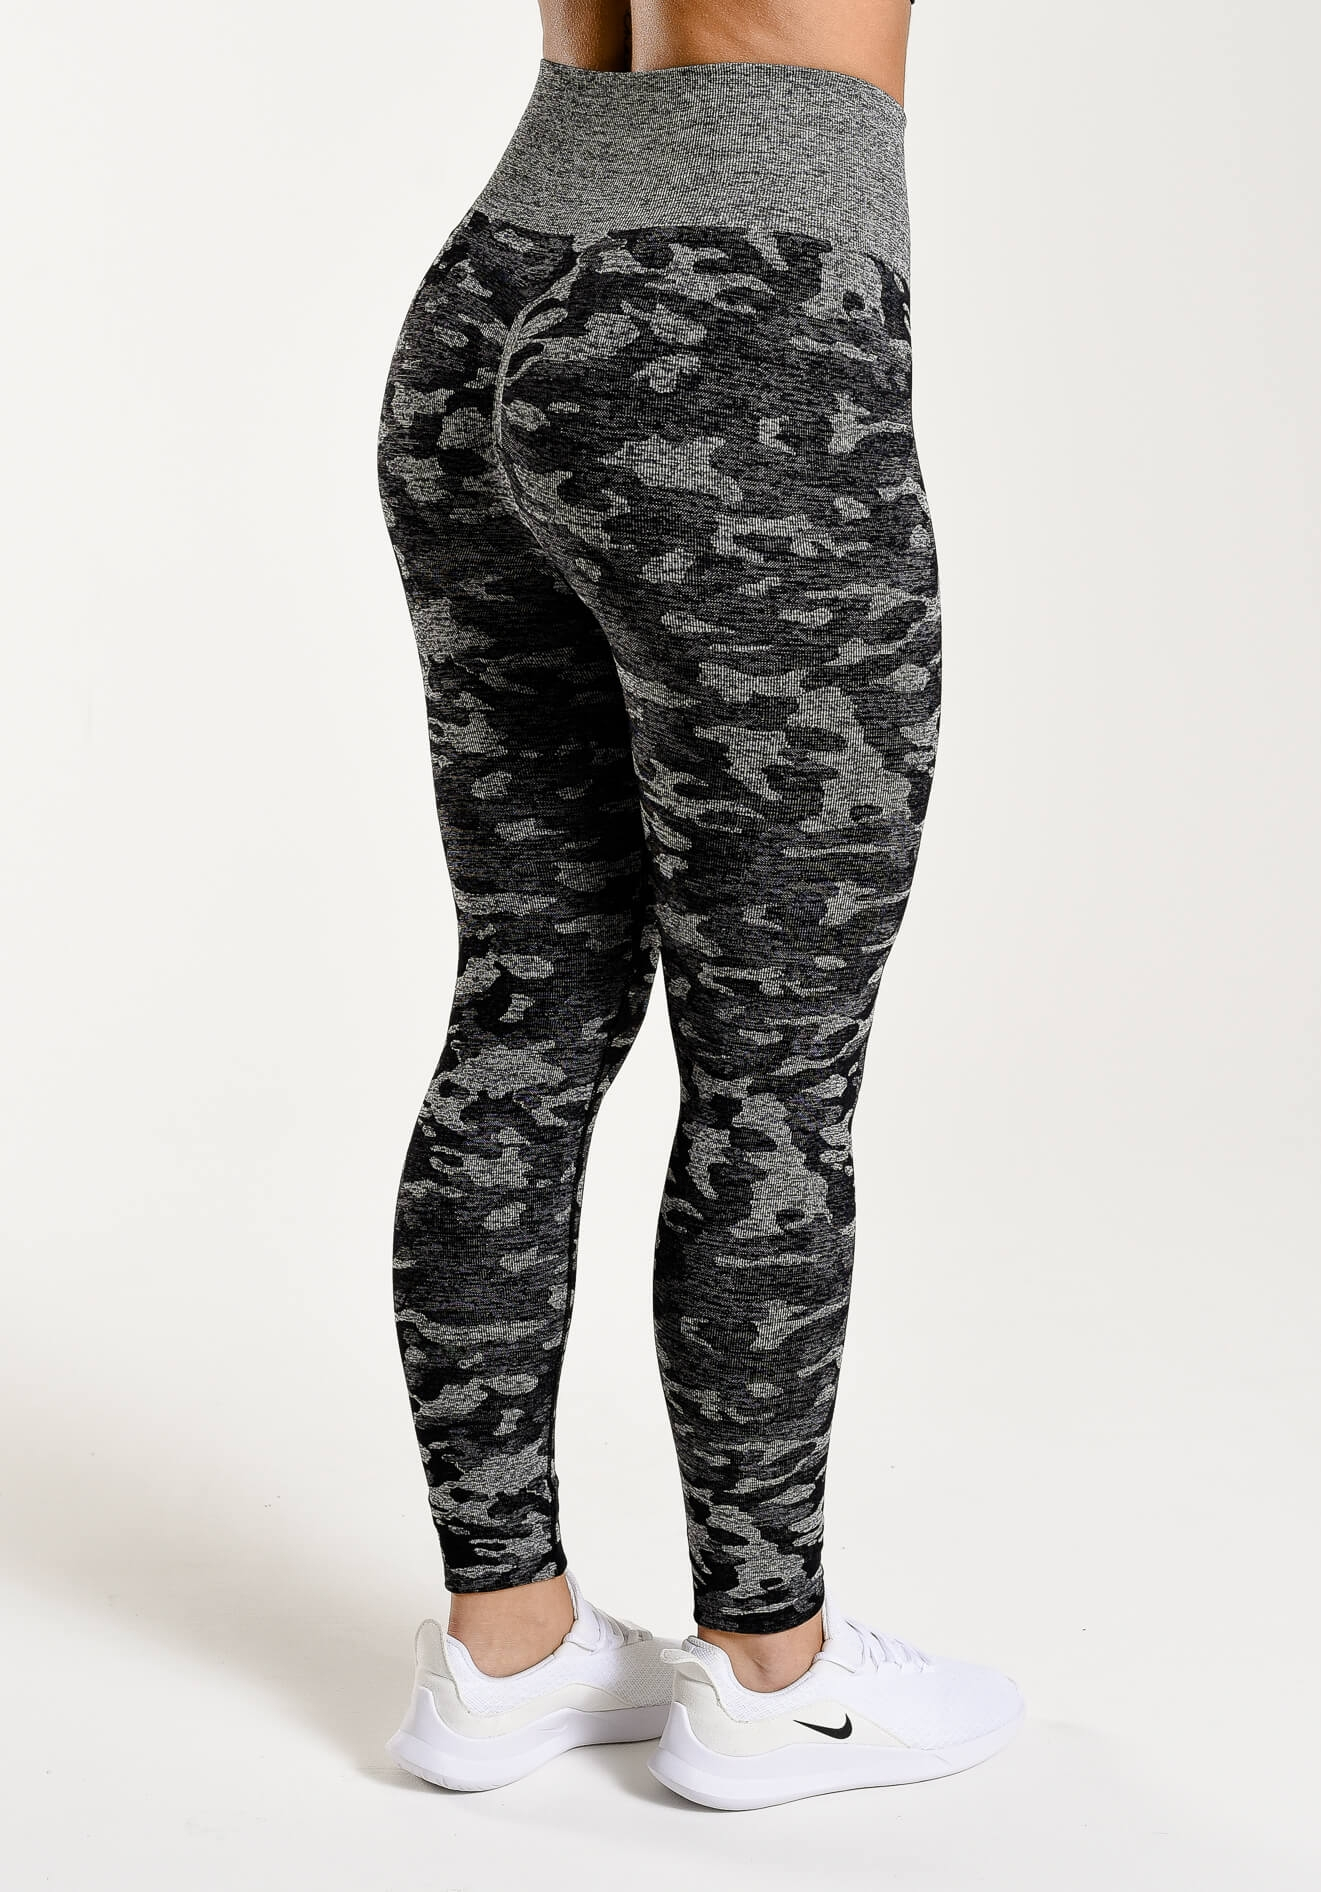 Iconic Army Seamless Tights